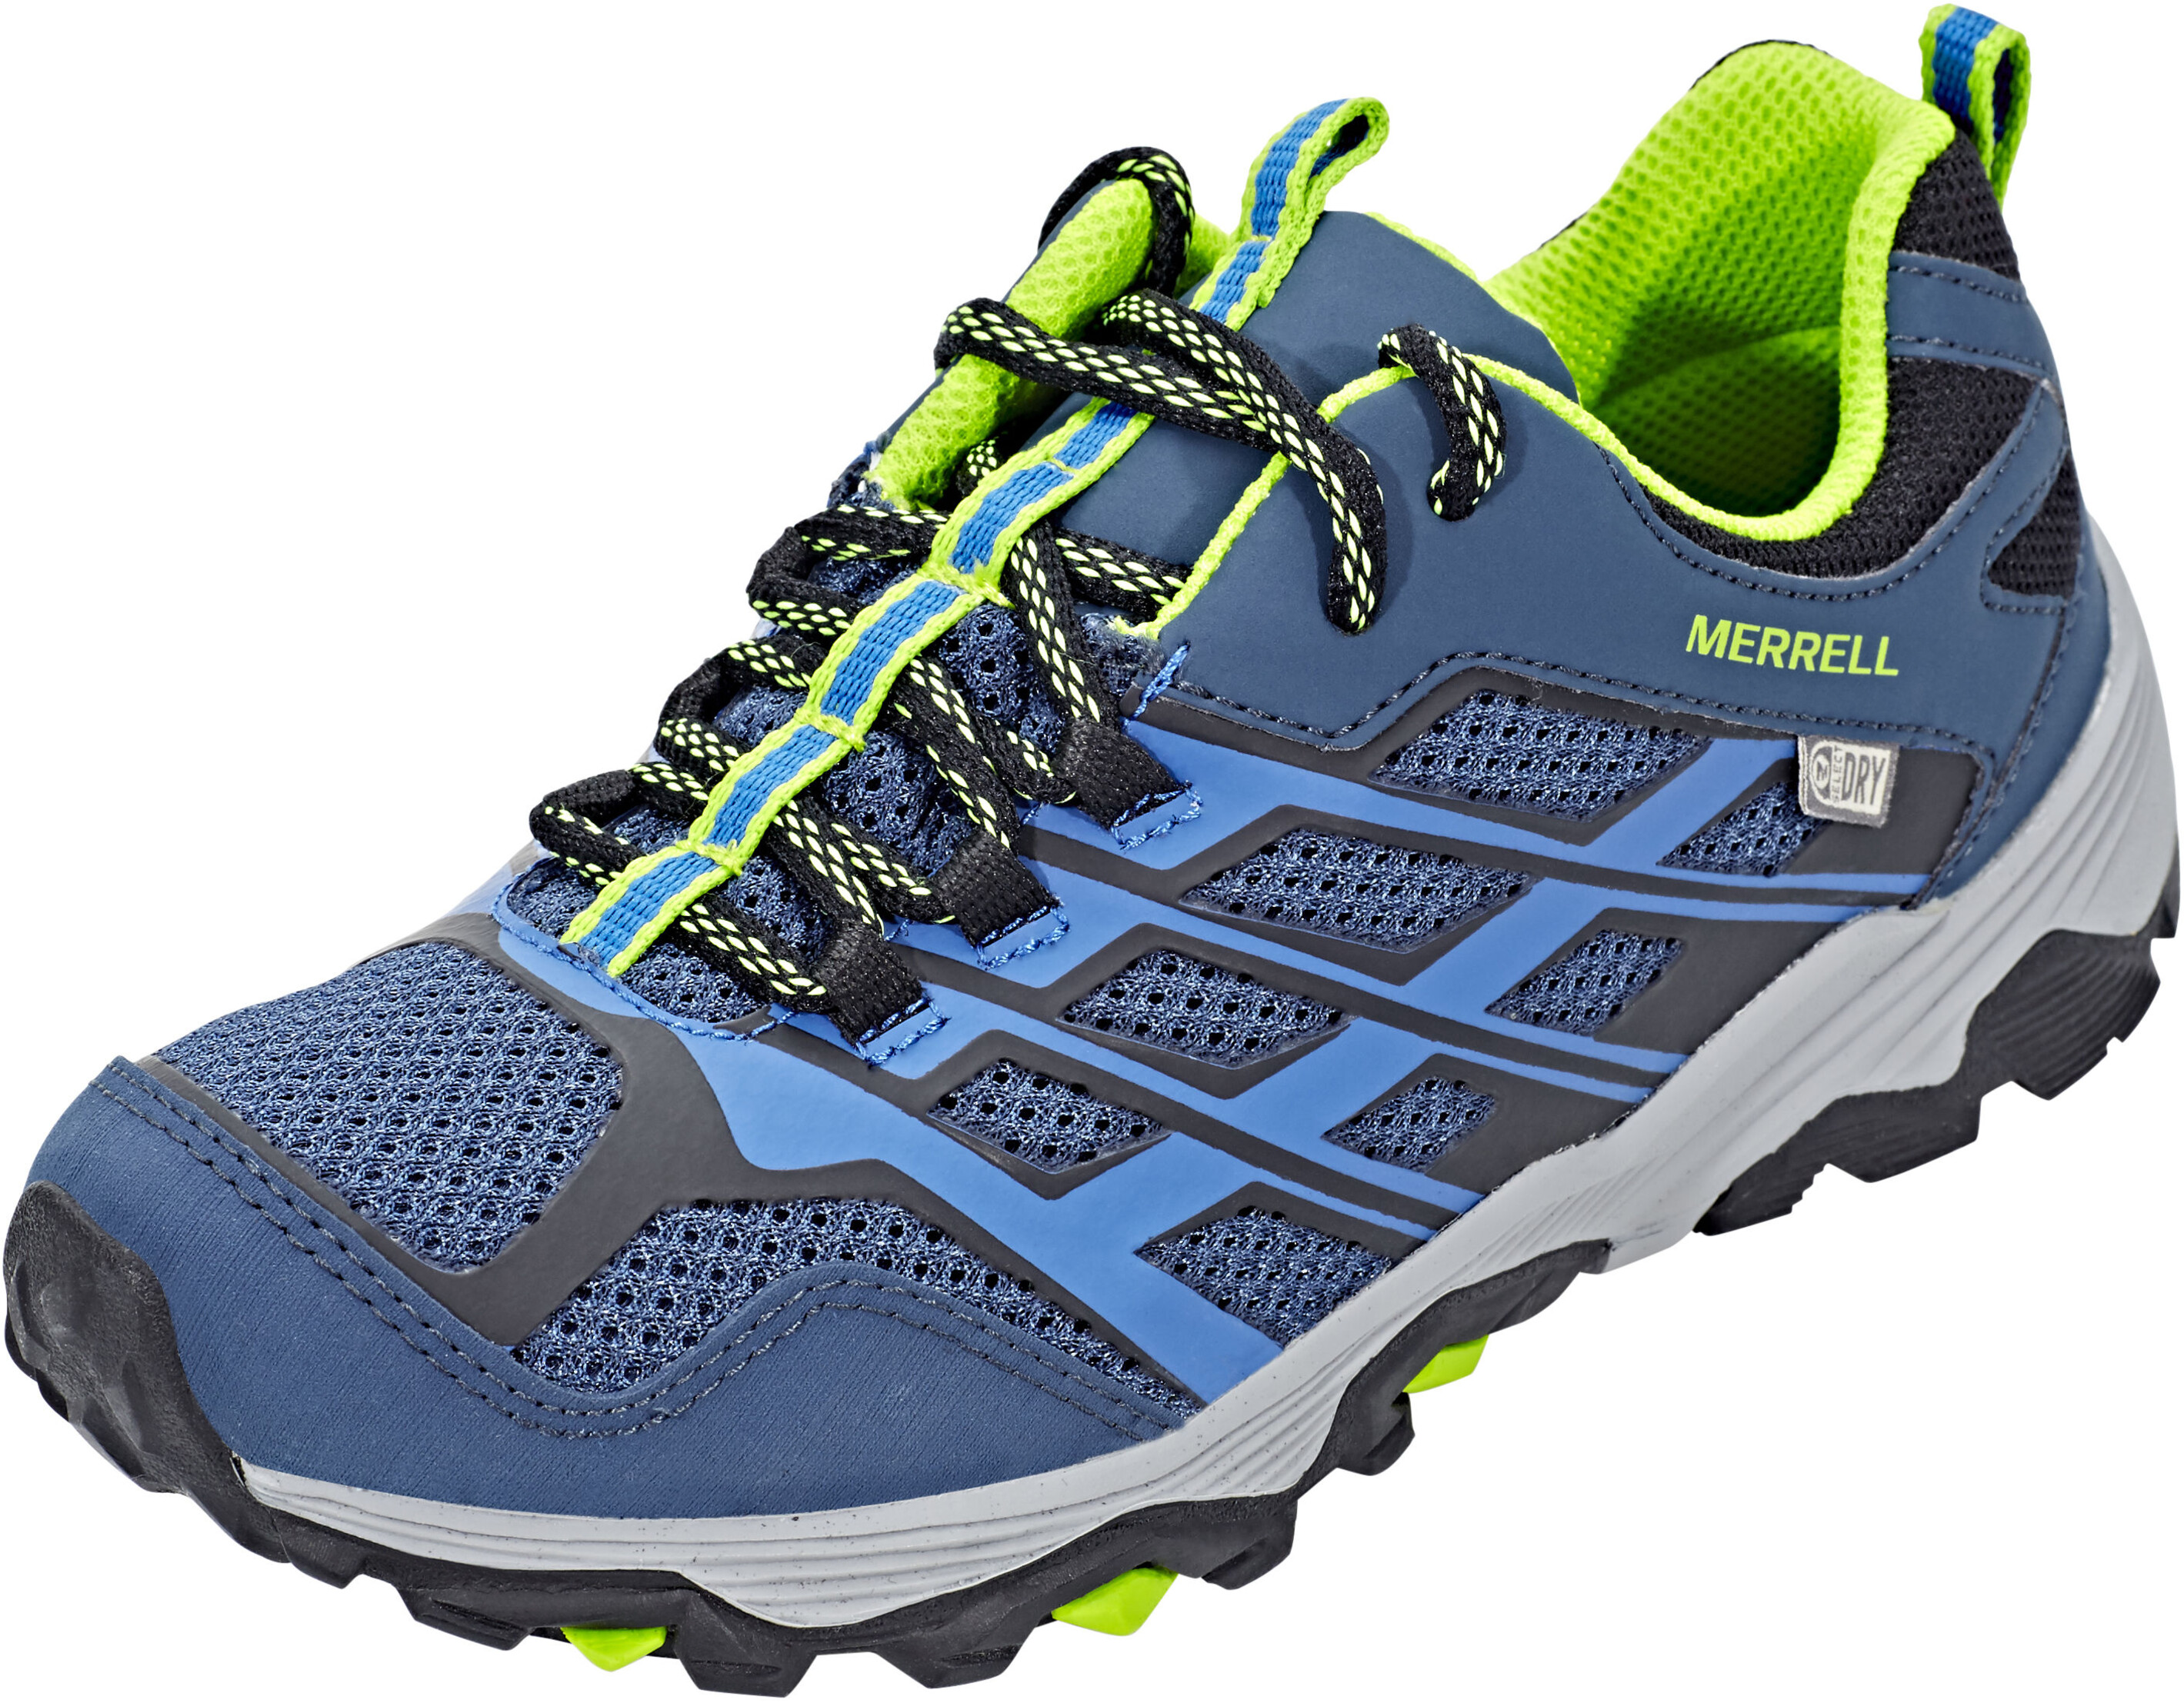 098824f9acfb Merrell Moab Fst Low WP Shoes Children blue at Addnature.co.uk